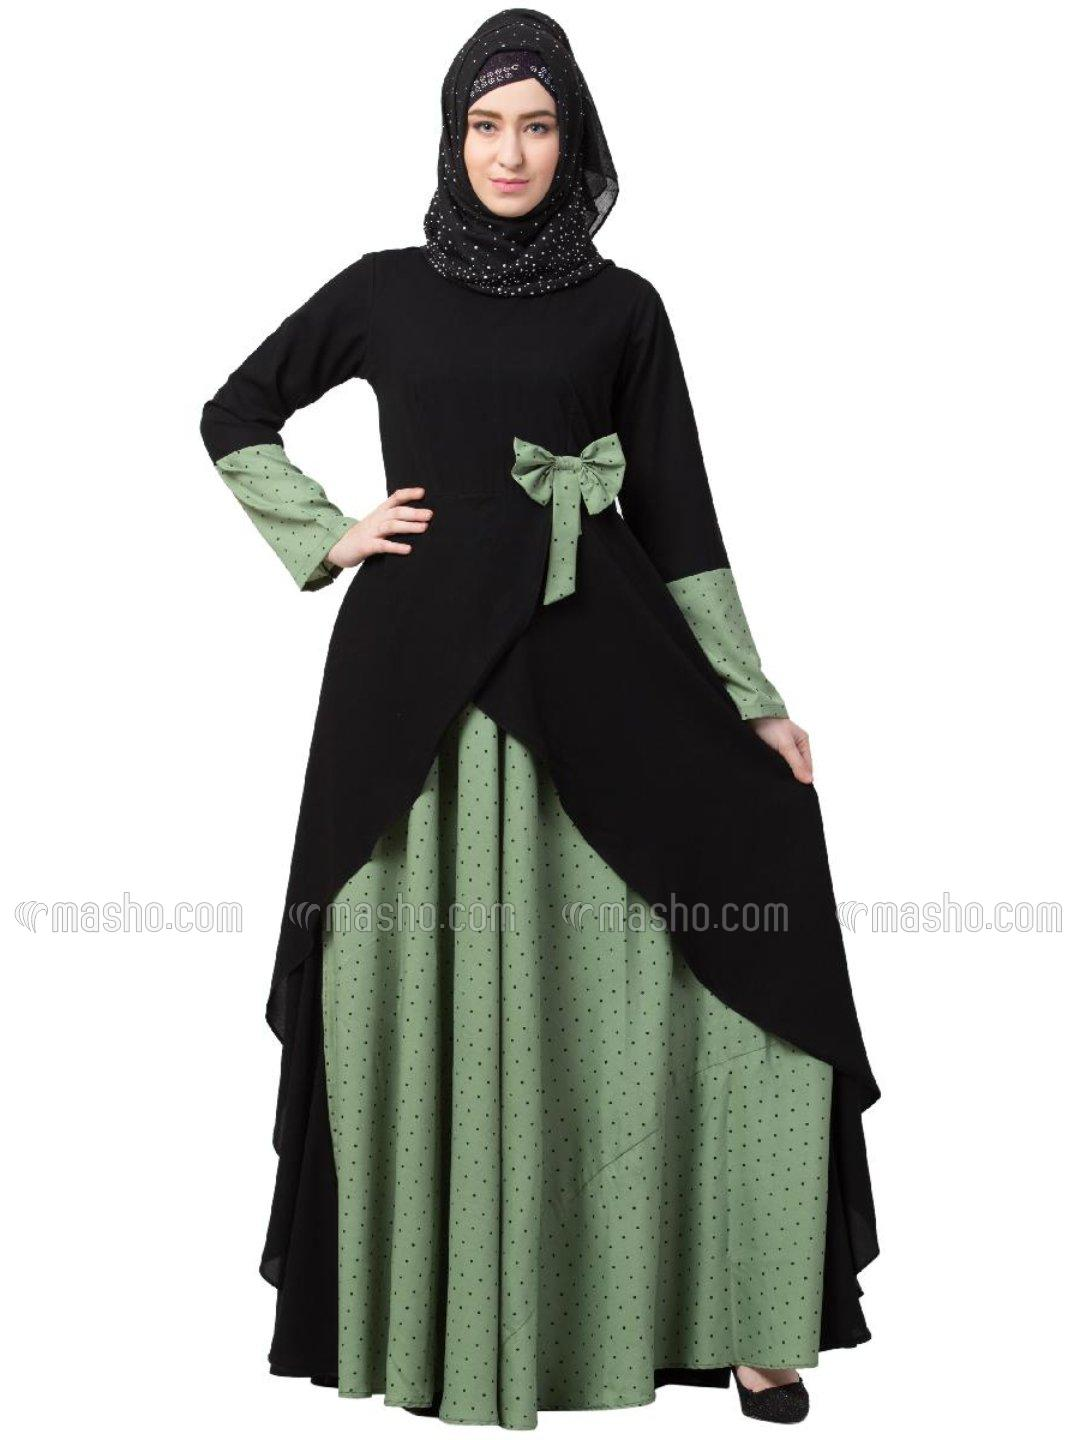 Nida Matte And Crepe Modest Dress With Polka Dotted In Green And Black